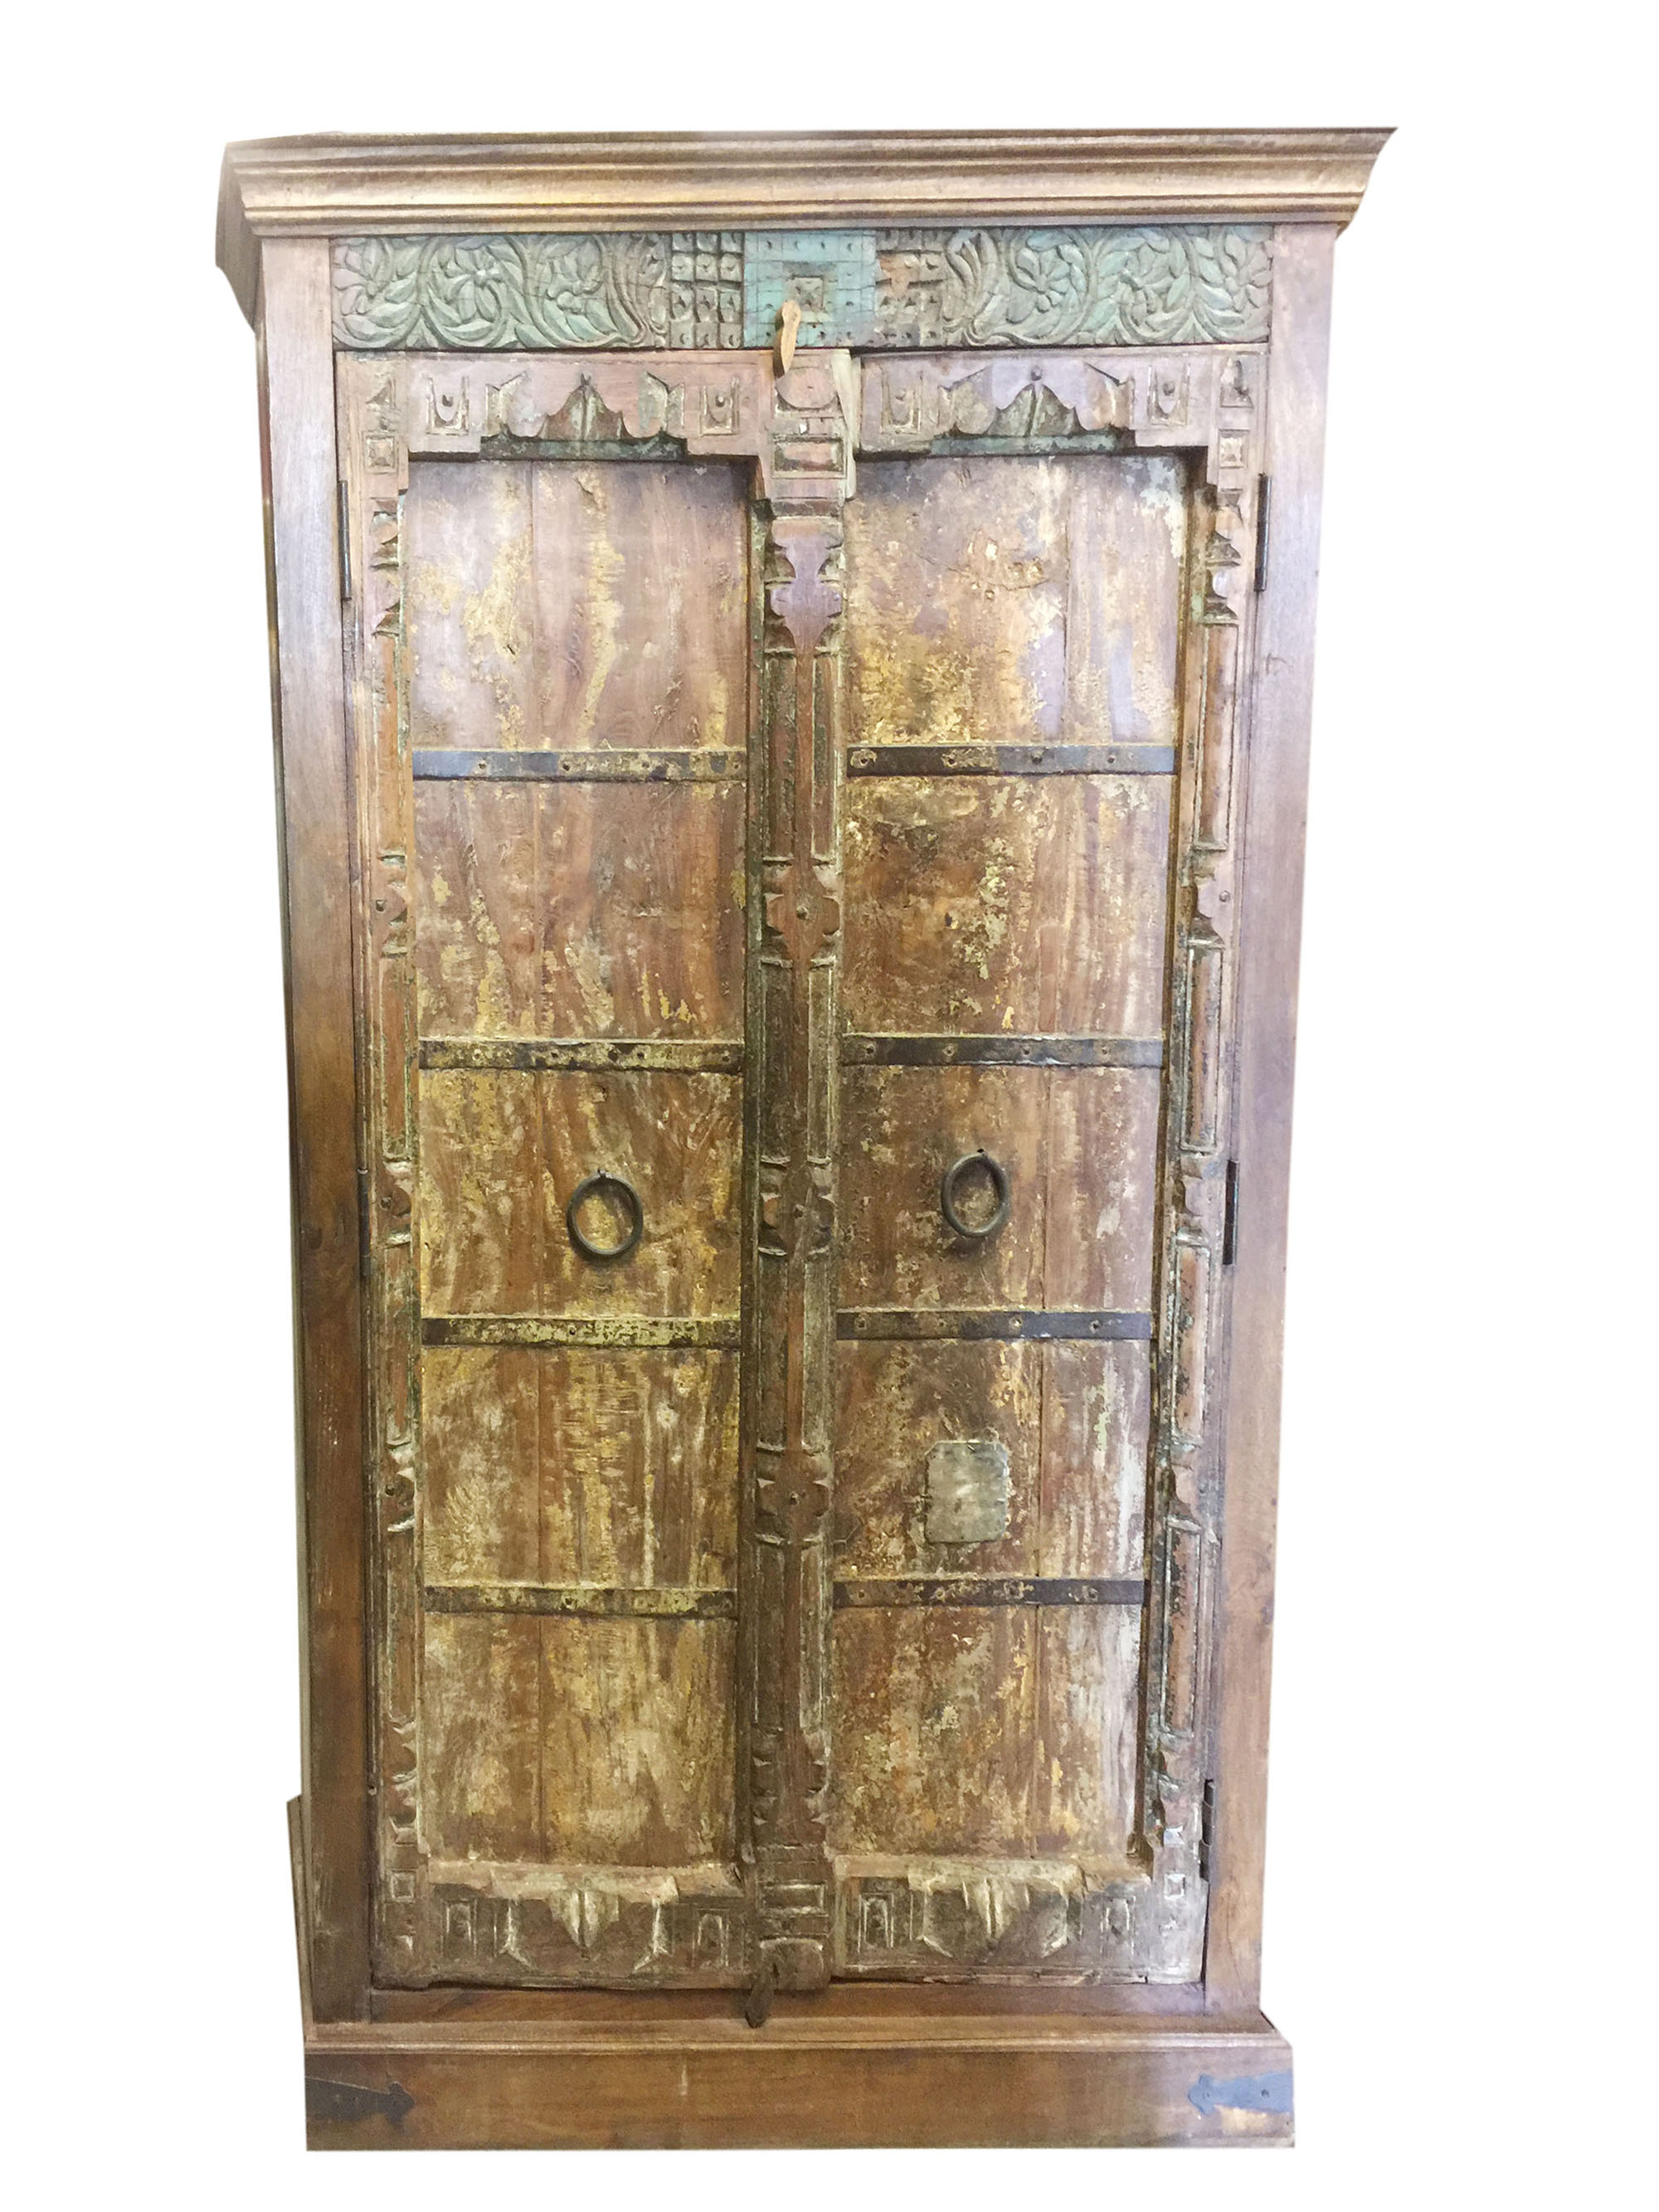 mogul indian antique armoire old doors rustic furniture iron storage cabinet vintage shabby chic decor antique storage cabinet with doors o25 cabinet